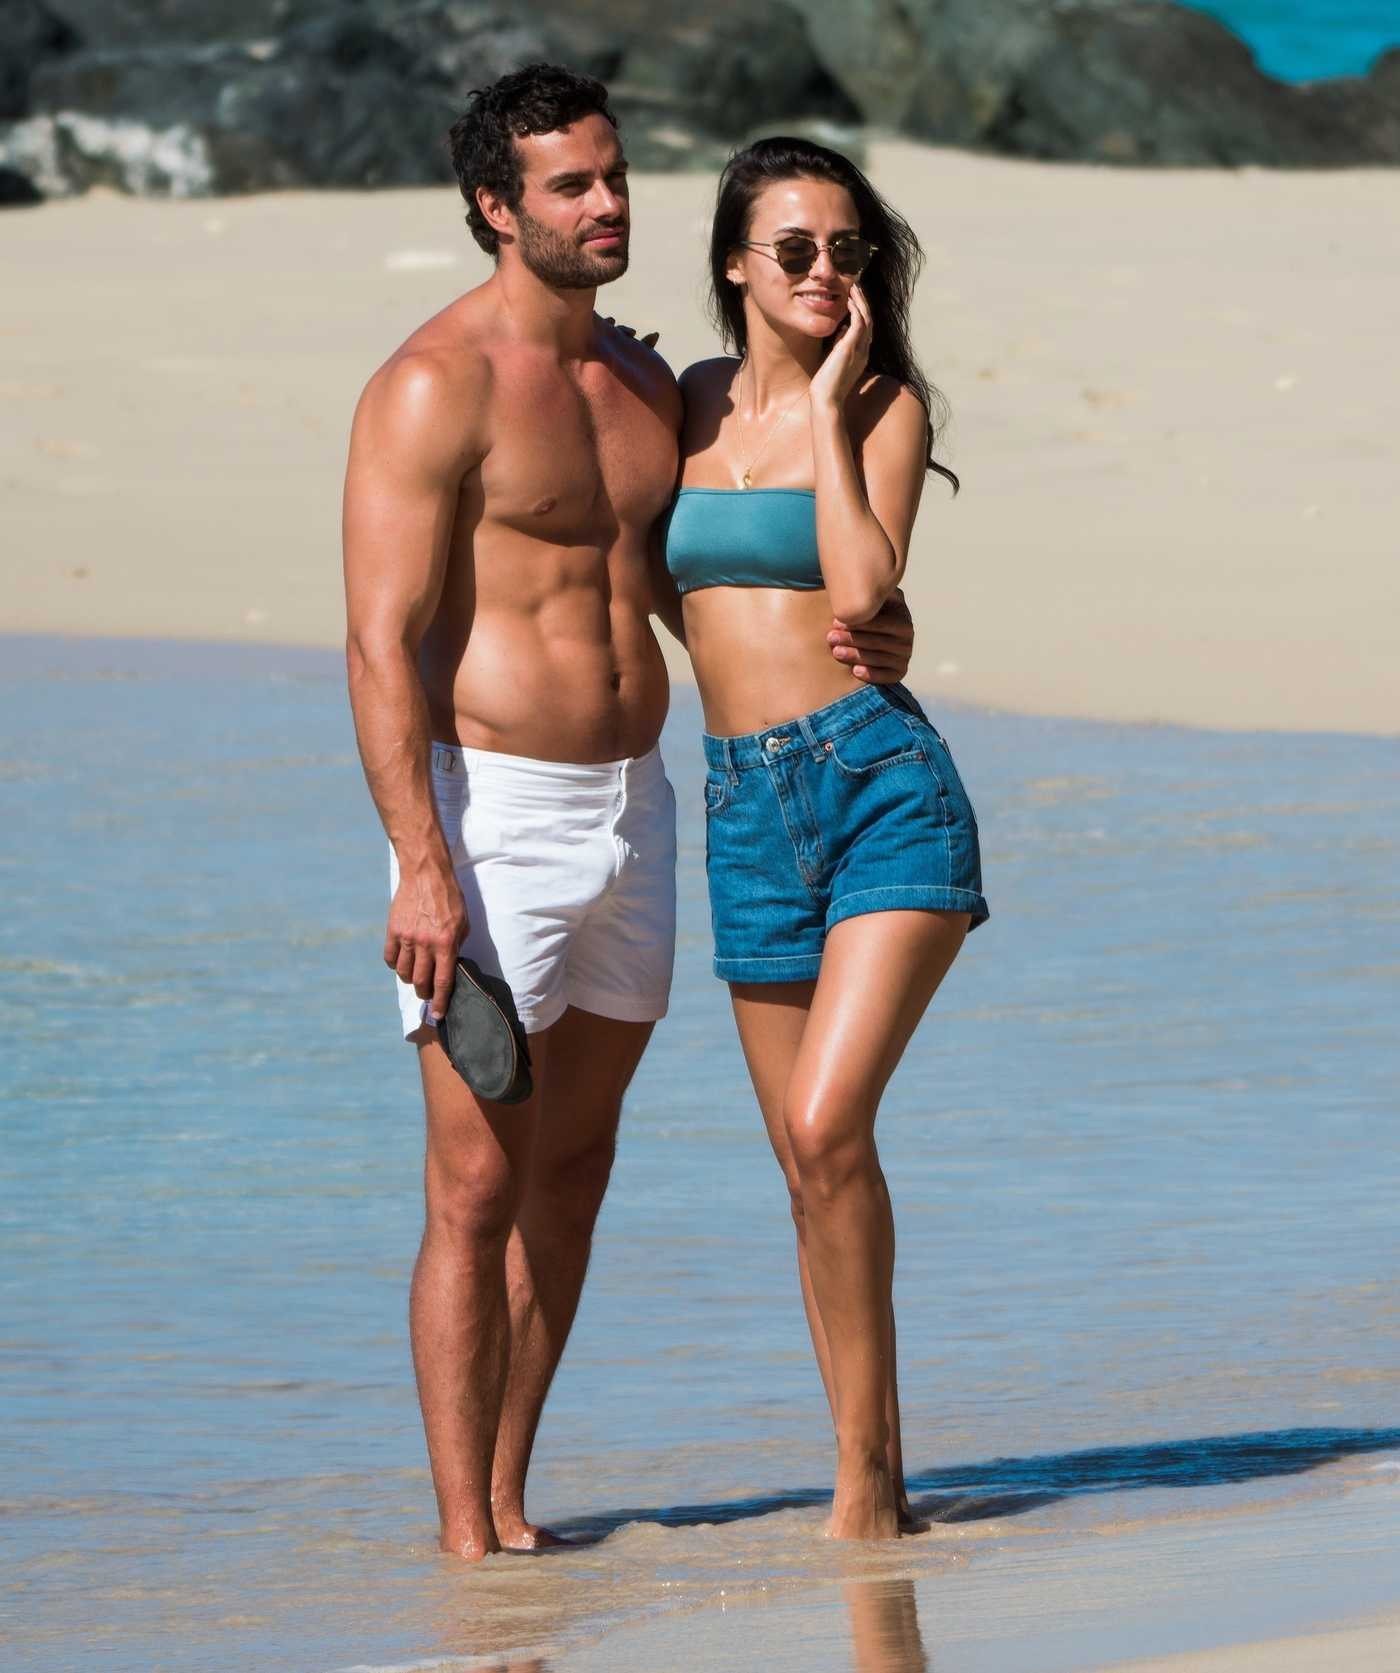 Lucy Watson in a Blue Bikini Top Out with James Dunmore on the Beach in Barbados 12/25/2018